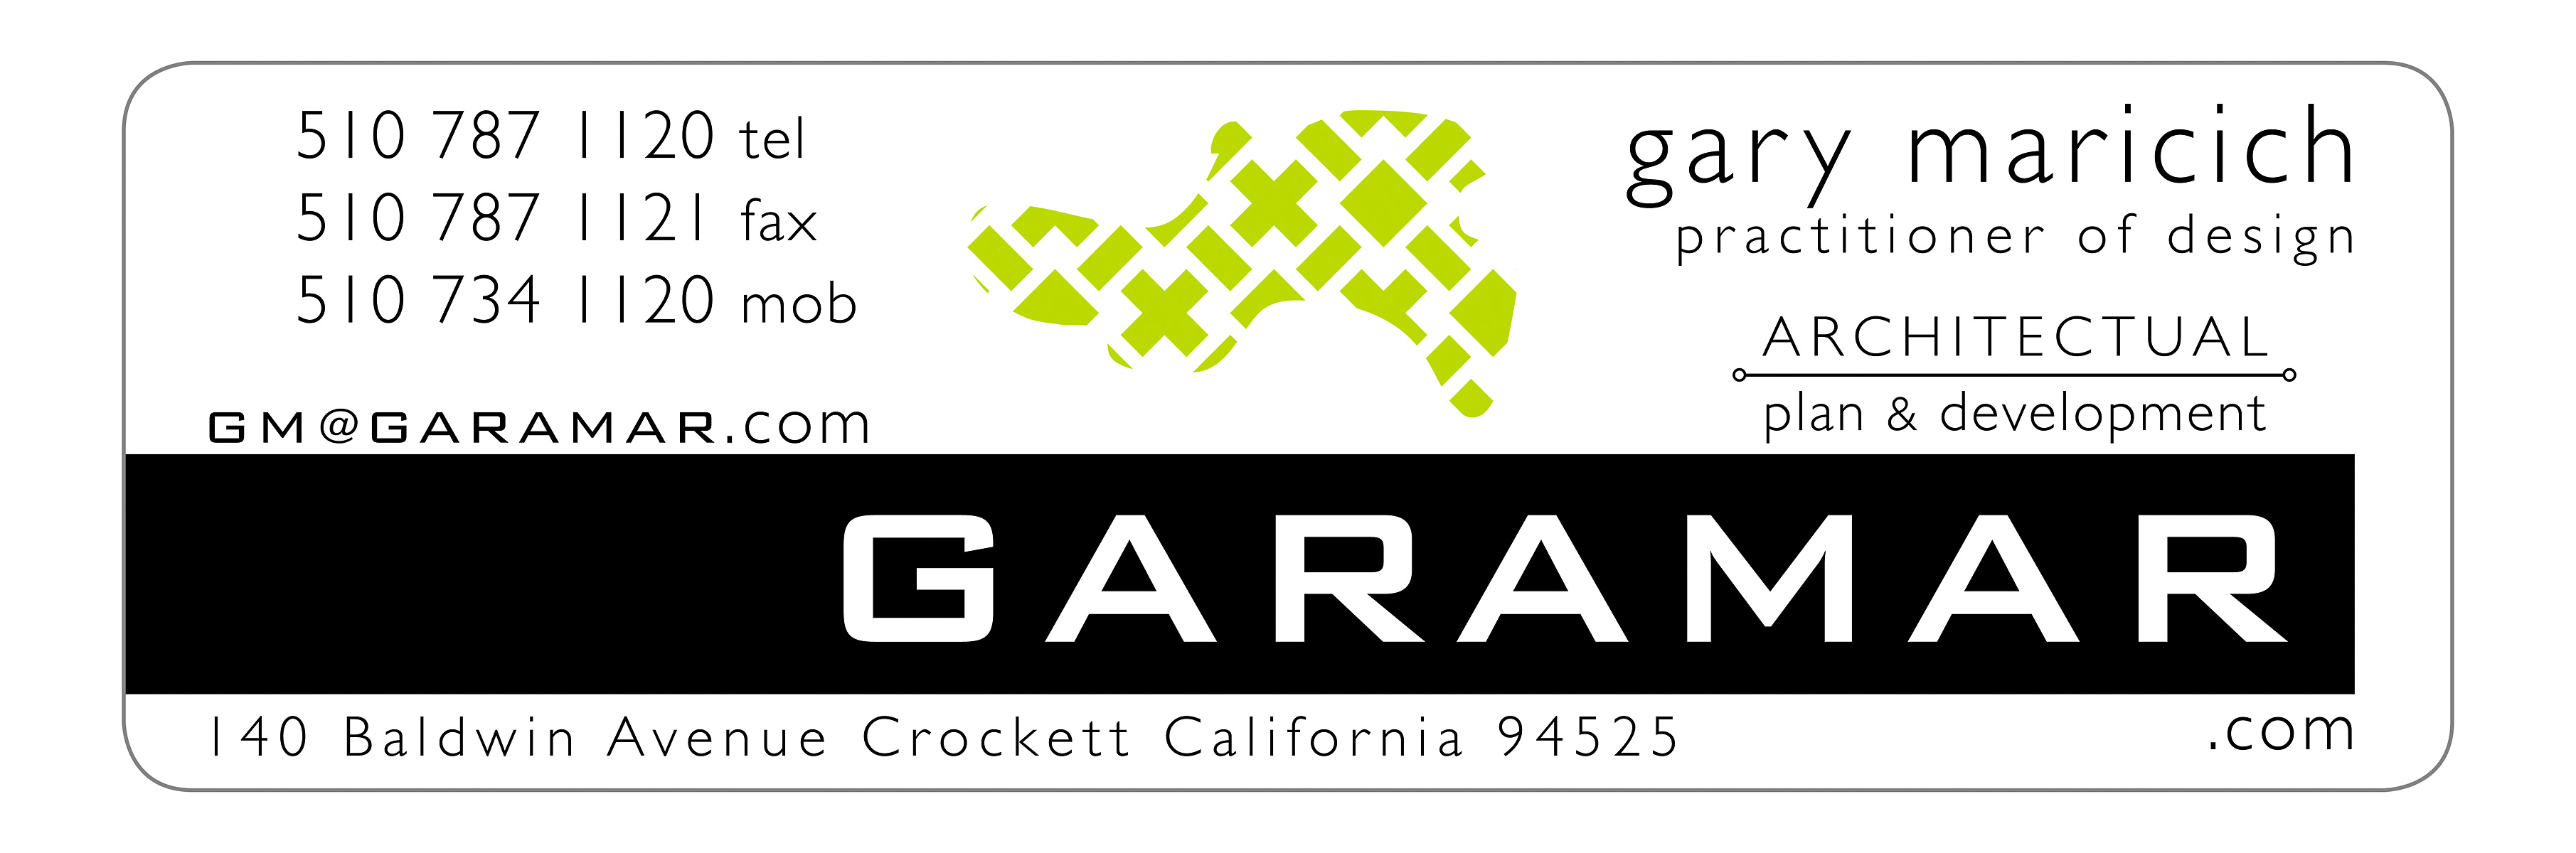 GARAMAR-label-v8a-design